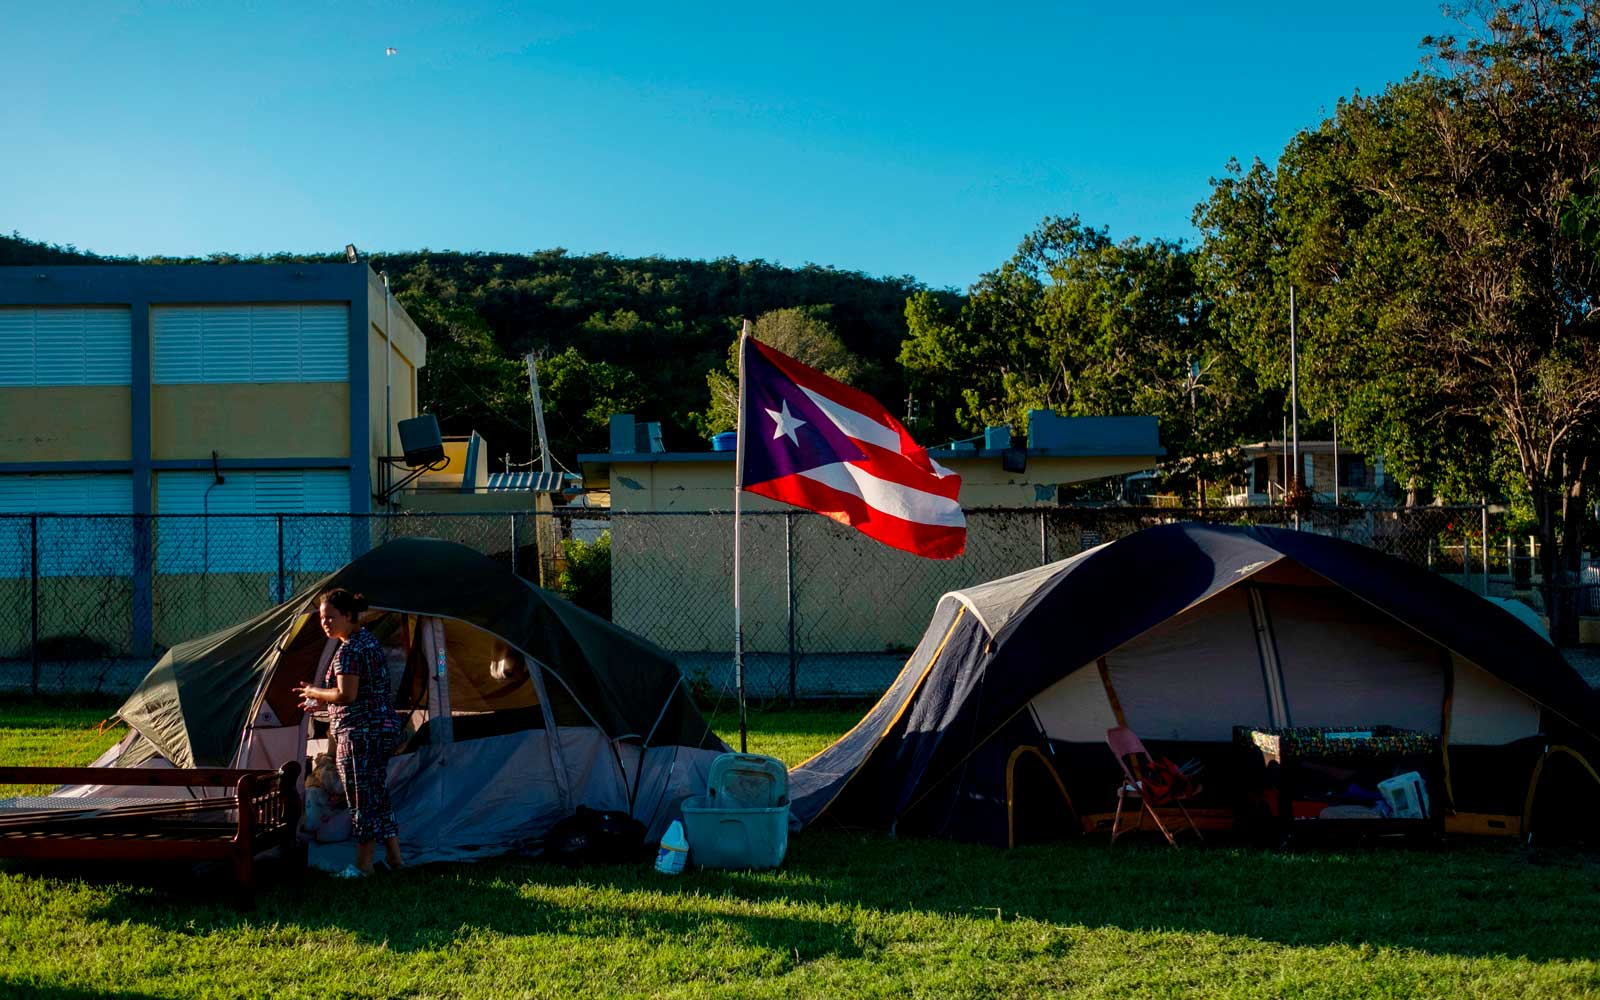 Solmely Velazquez stands in front of her tent in a baseball field in Guanica, Puerto Rico on January 15, 2020, after a powerful earthquake hit the island.